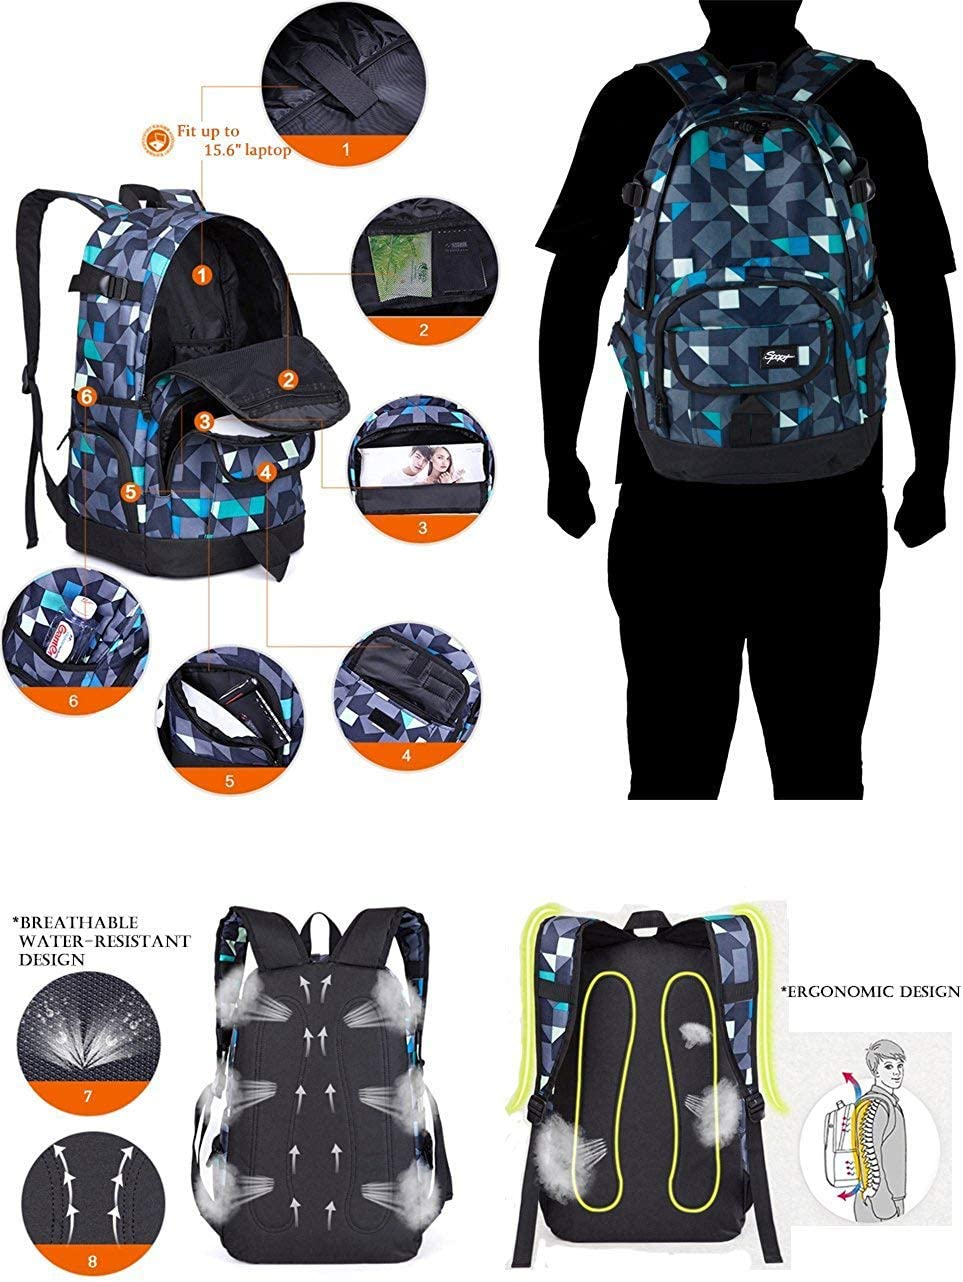 Men /& Women Lightweight with Laptop Compartment-Dark Red Ricky-H Red//Black Graffiti School Backpack for Girls /& Boys Students